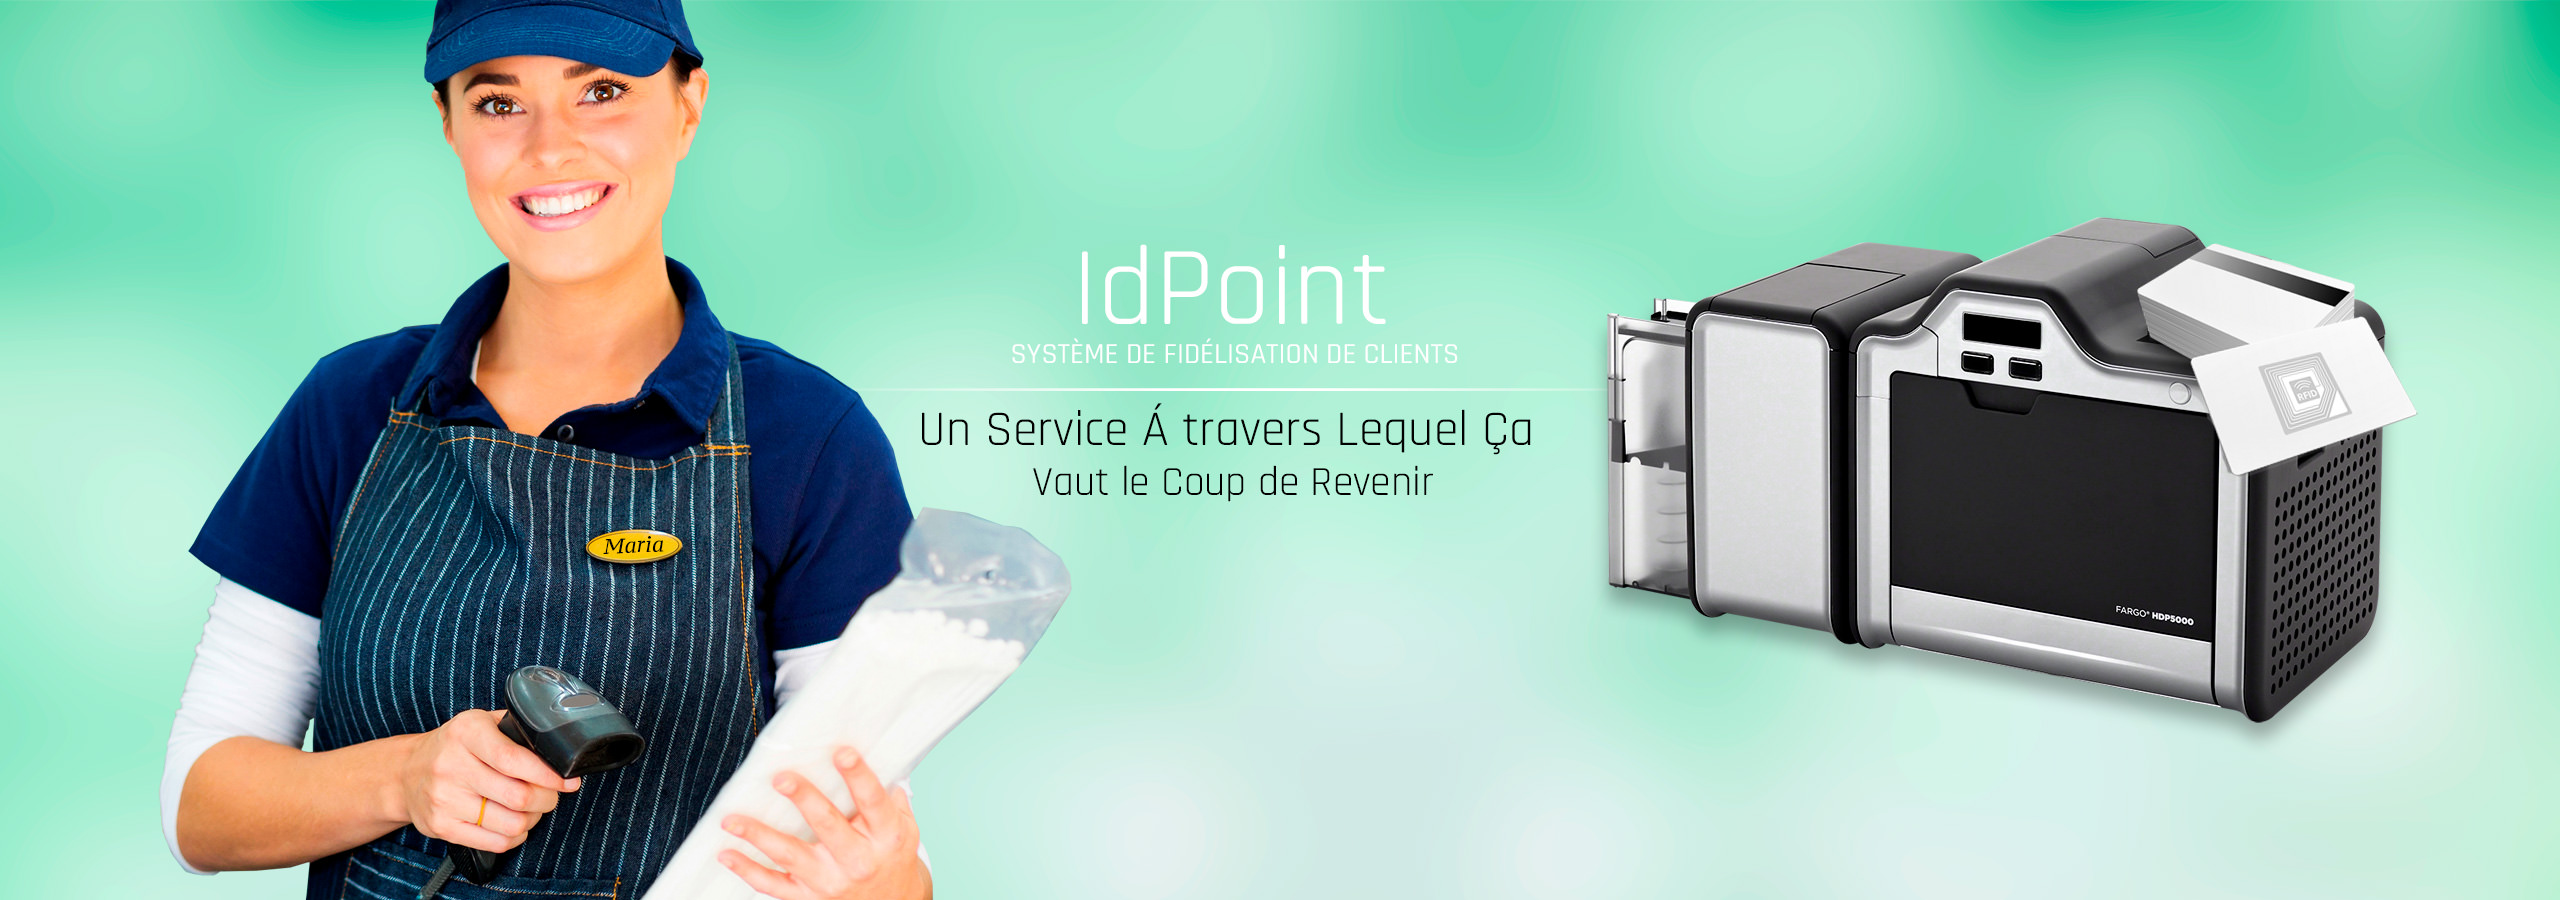 Destaque-Homepage-IdPoint-FR